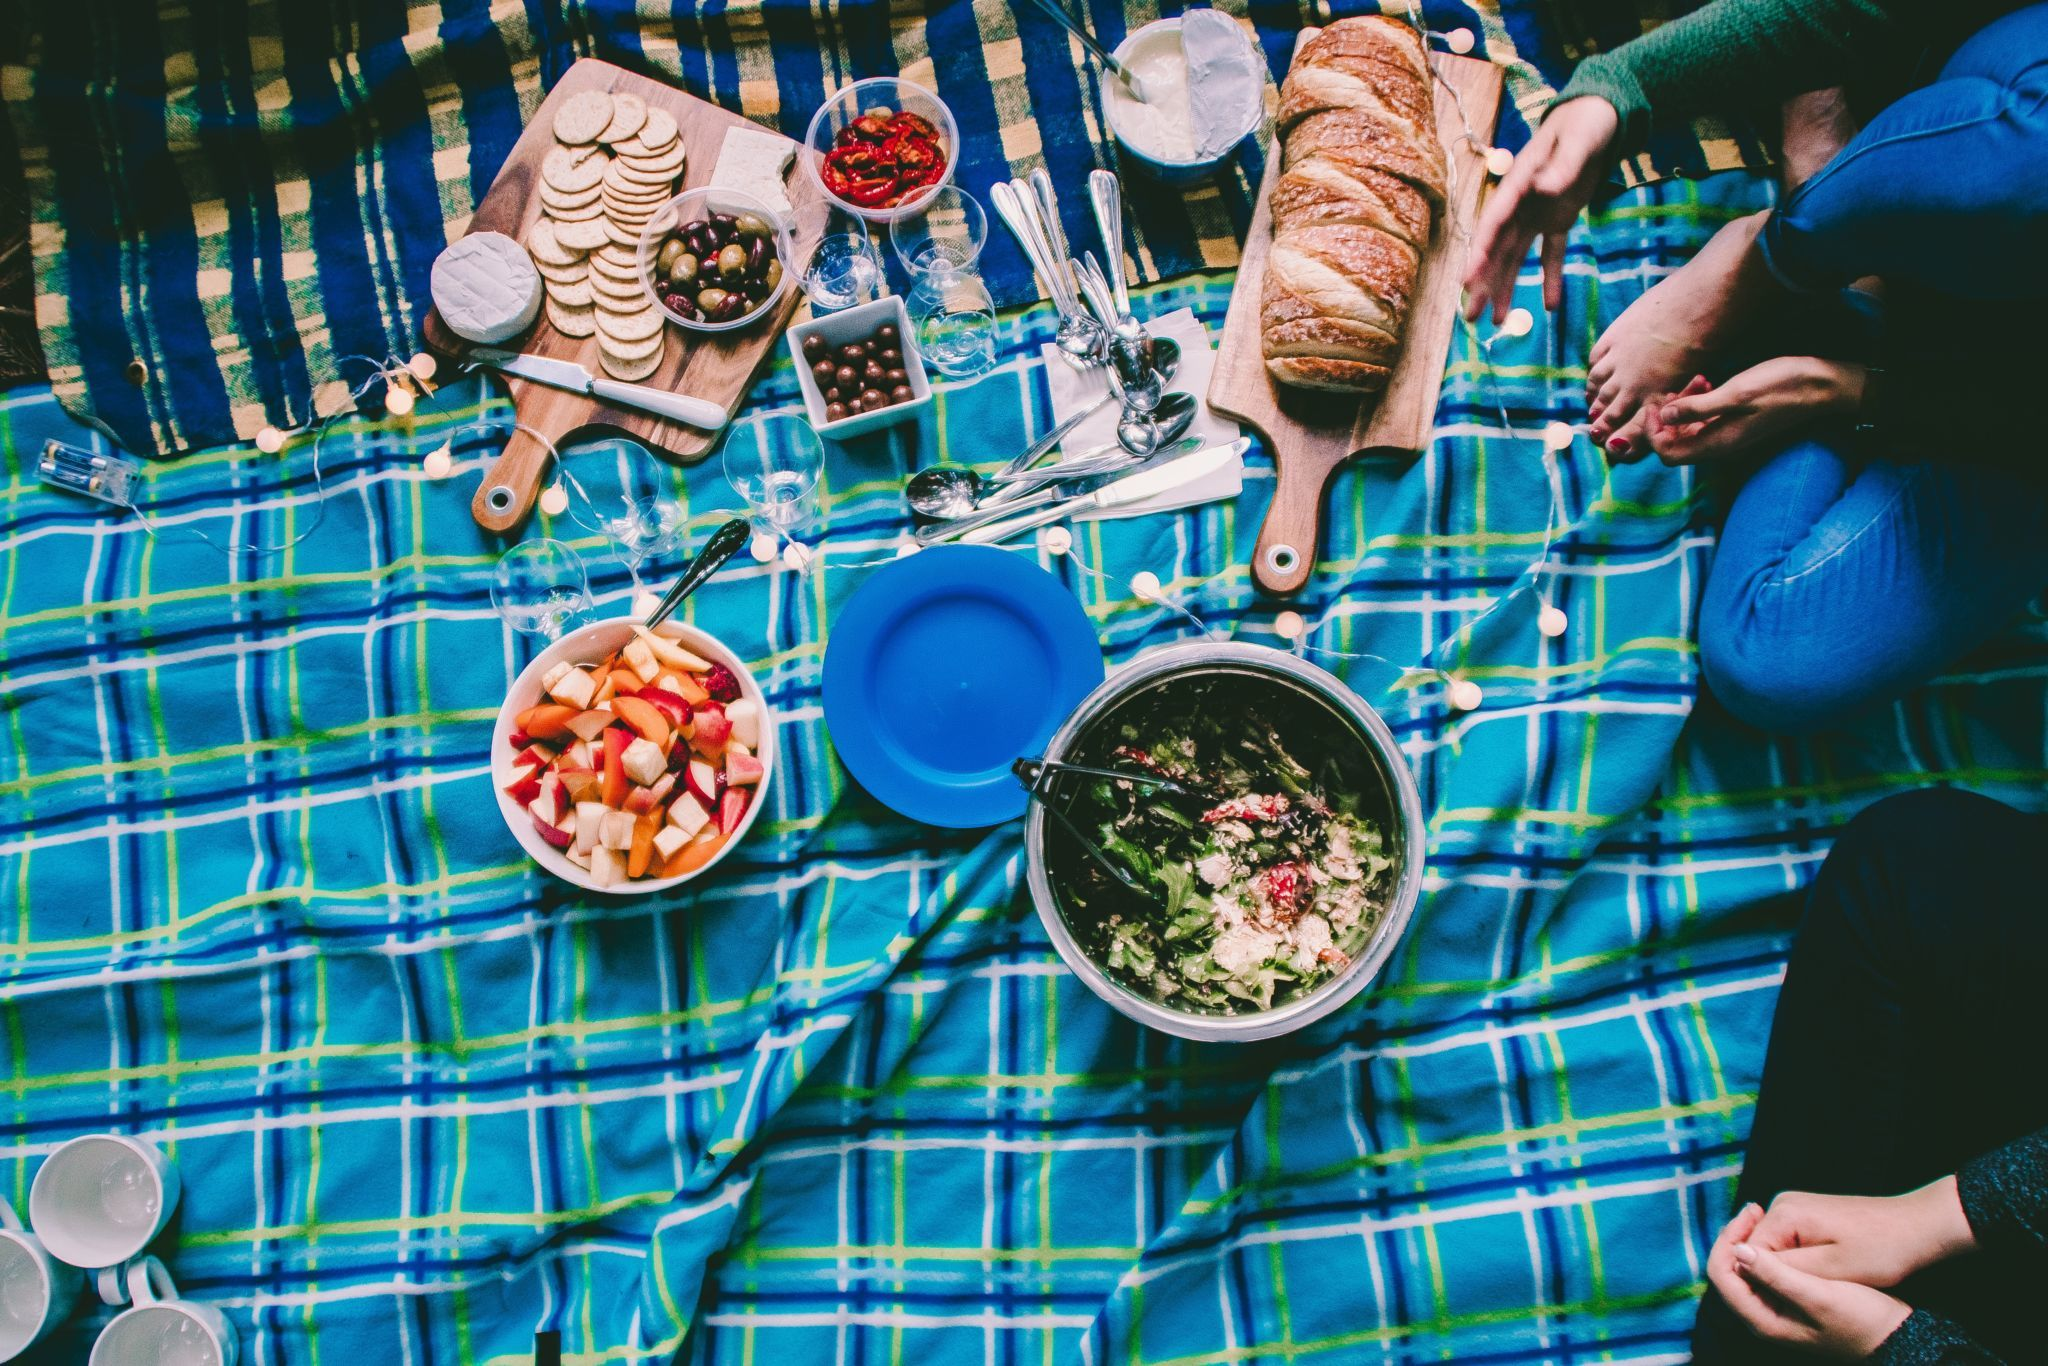 Christ Church Cathedral and St. Monica's Urban Picnic